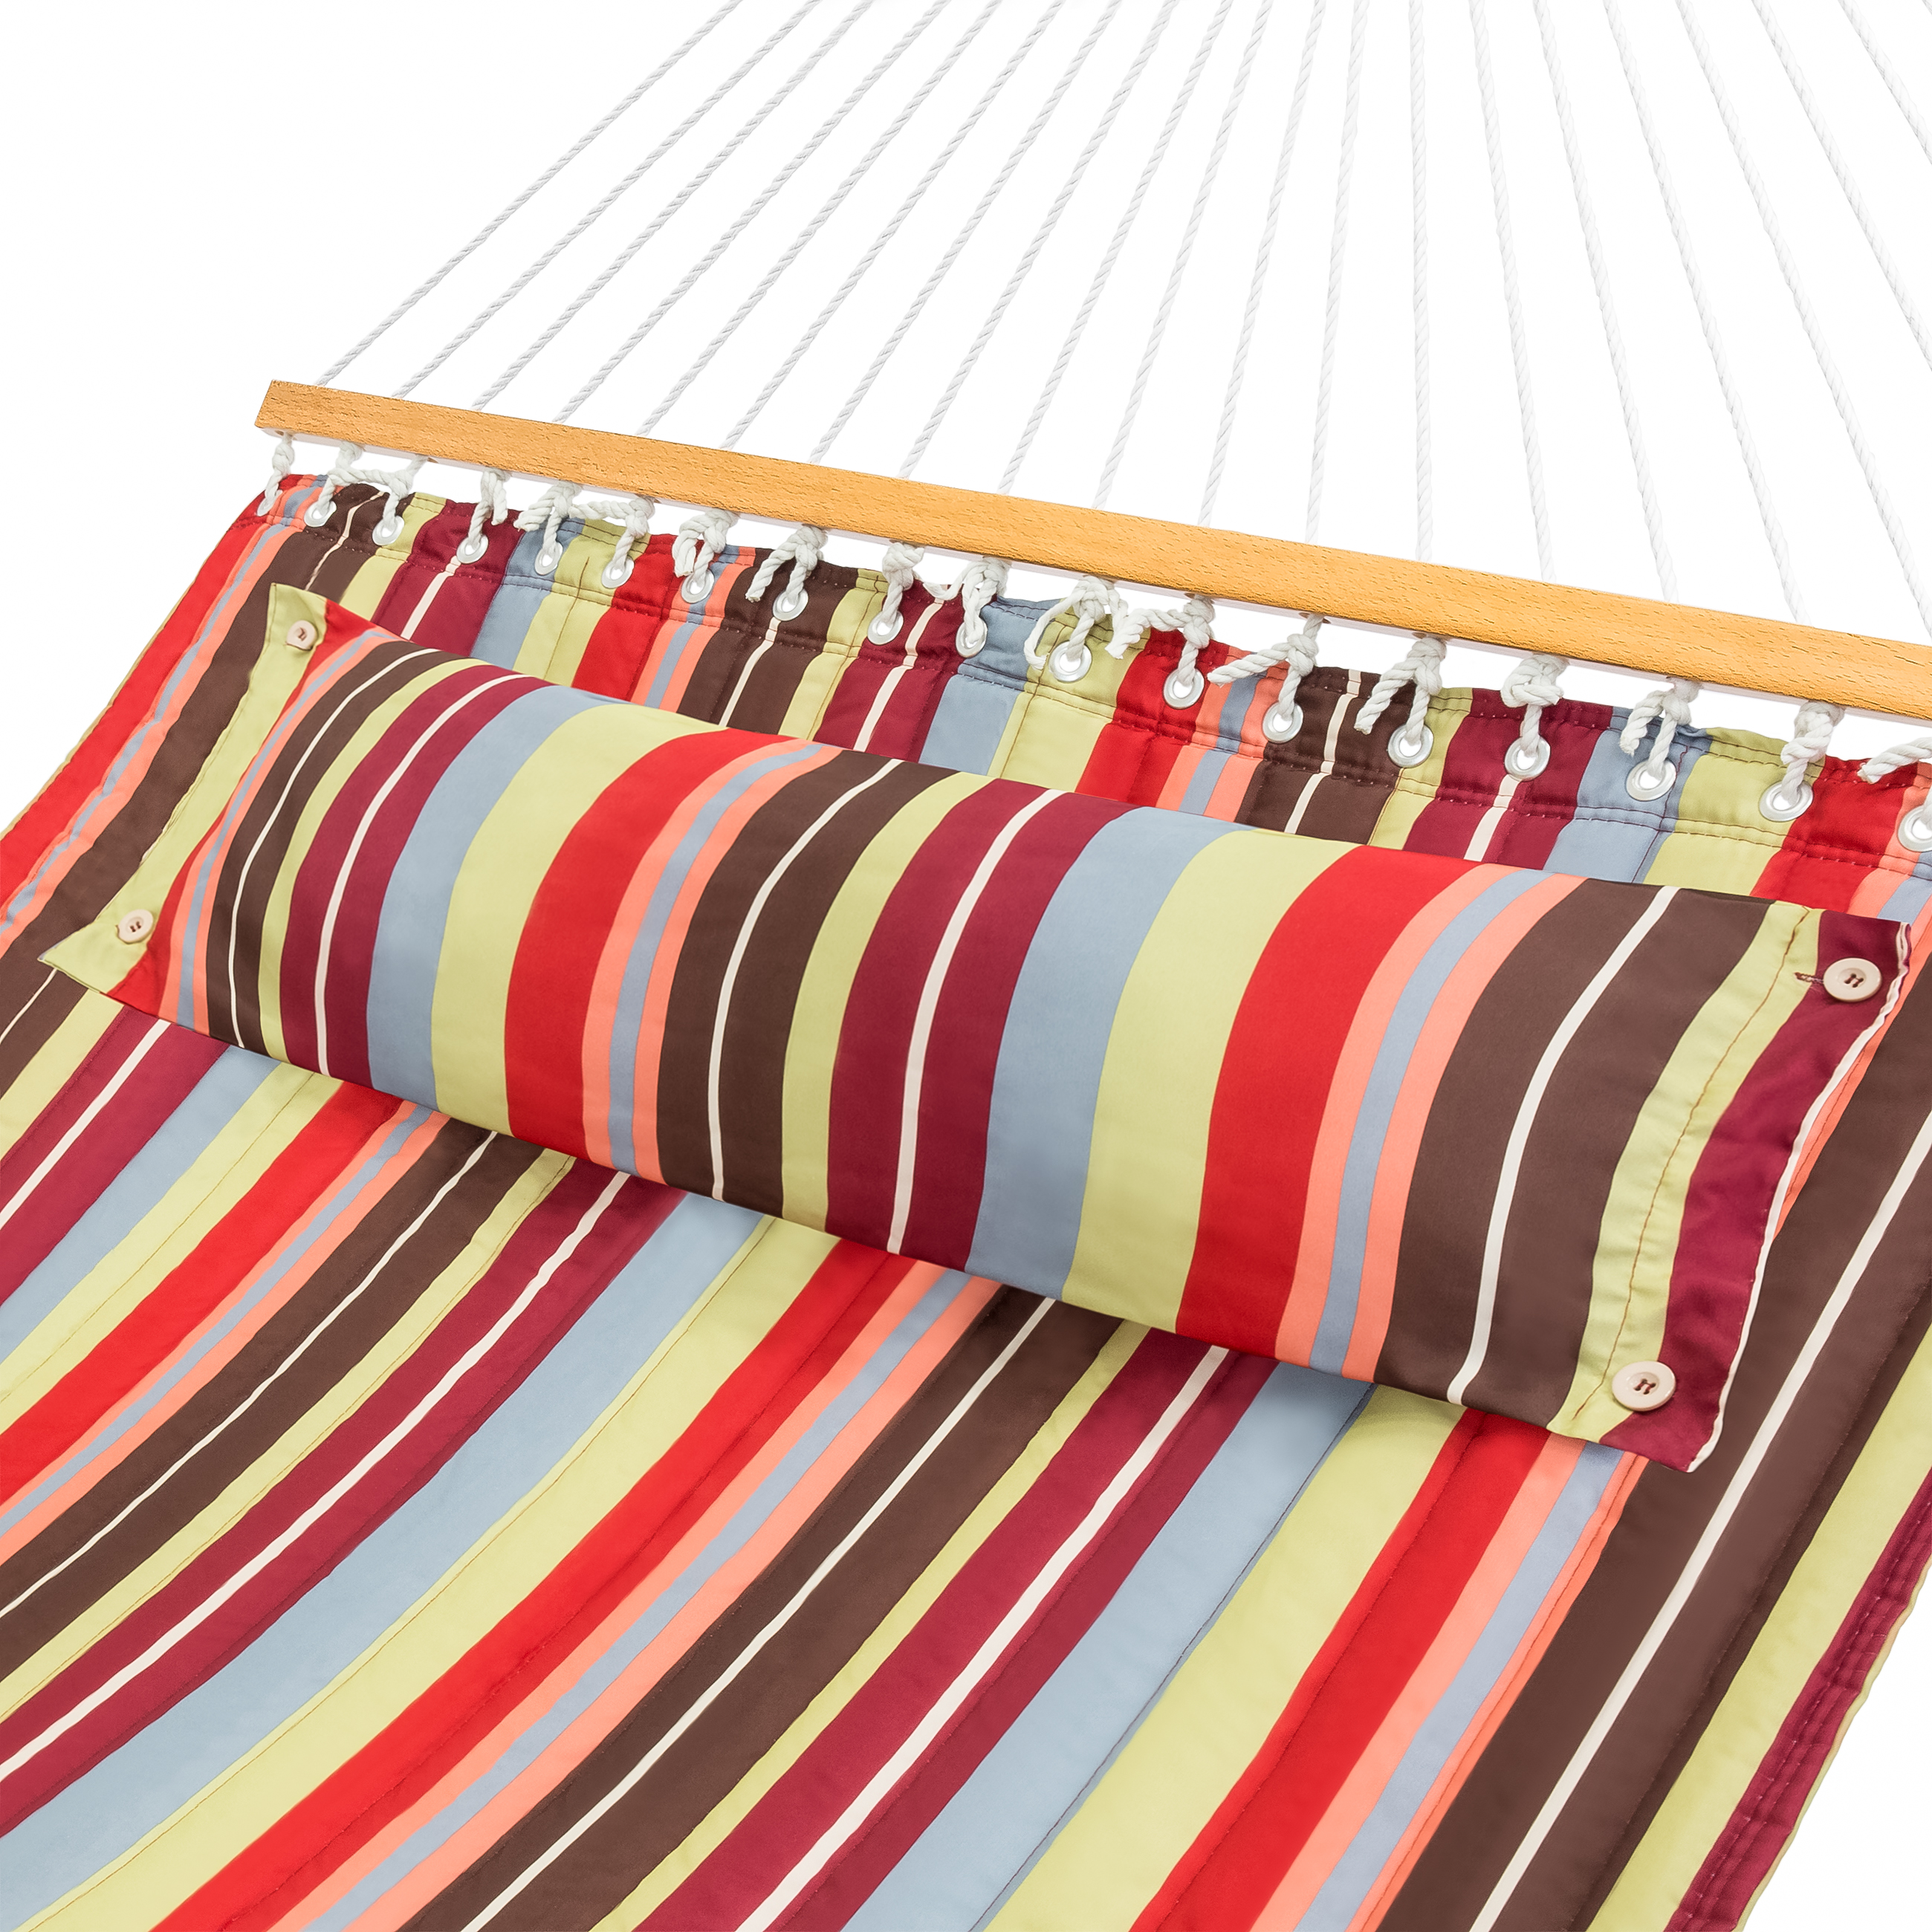 Best Choice Products Quilted Double Hammock w/ Detachable Pillow, Spreader Bar - Red and Blue Stripe